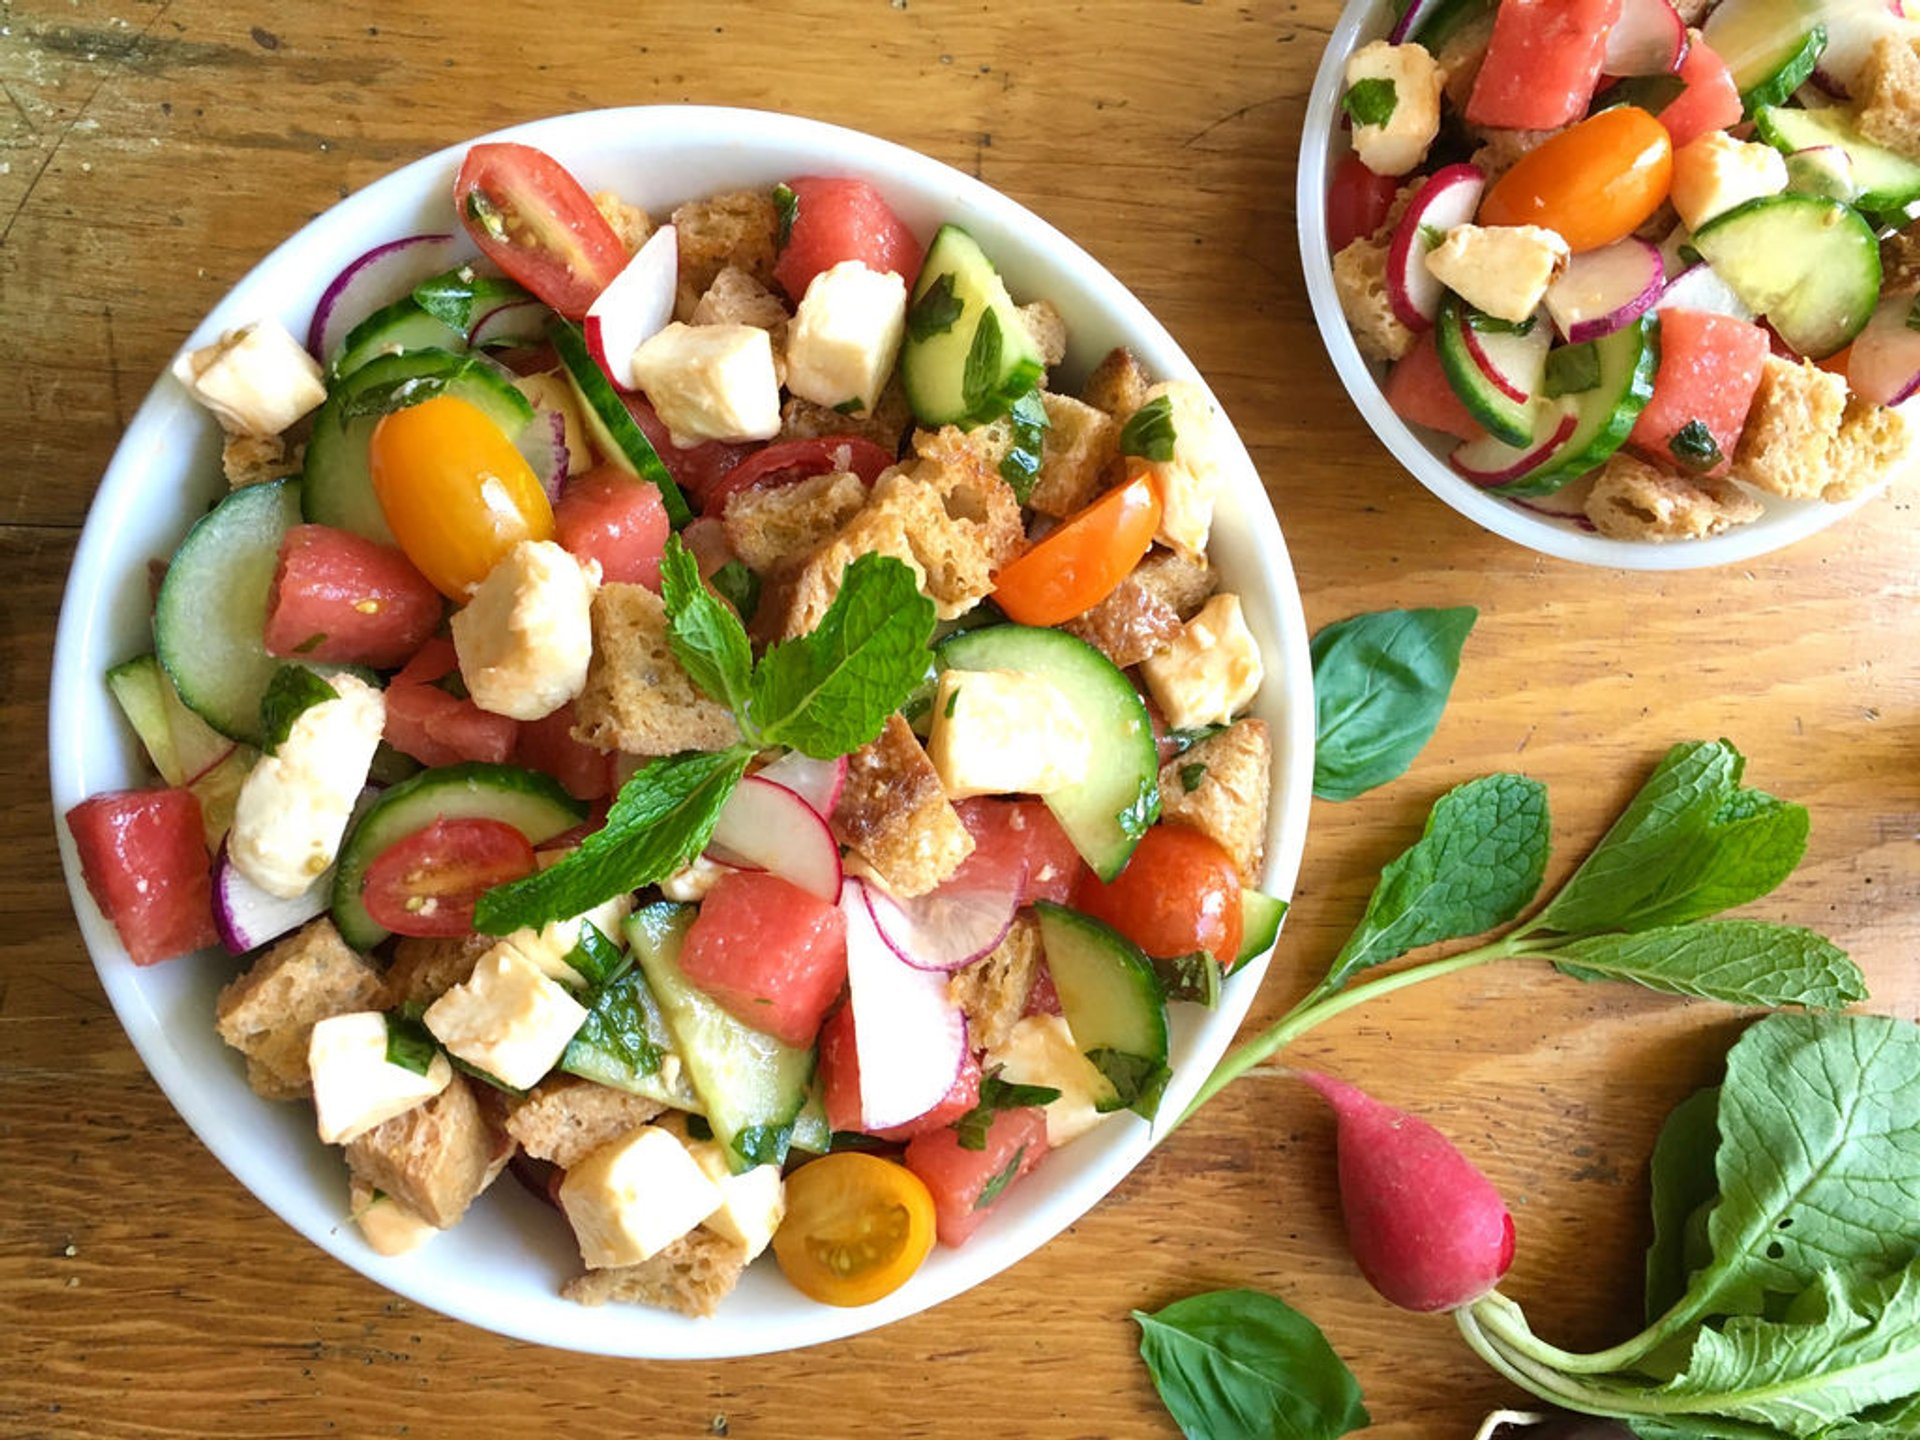 Panzanella in Tuscany - Best Season 2020